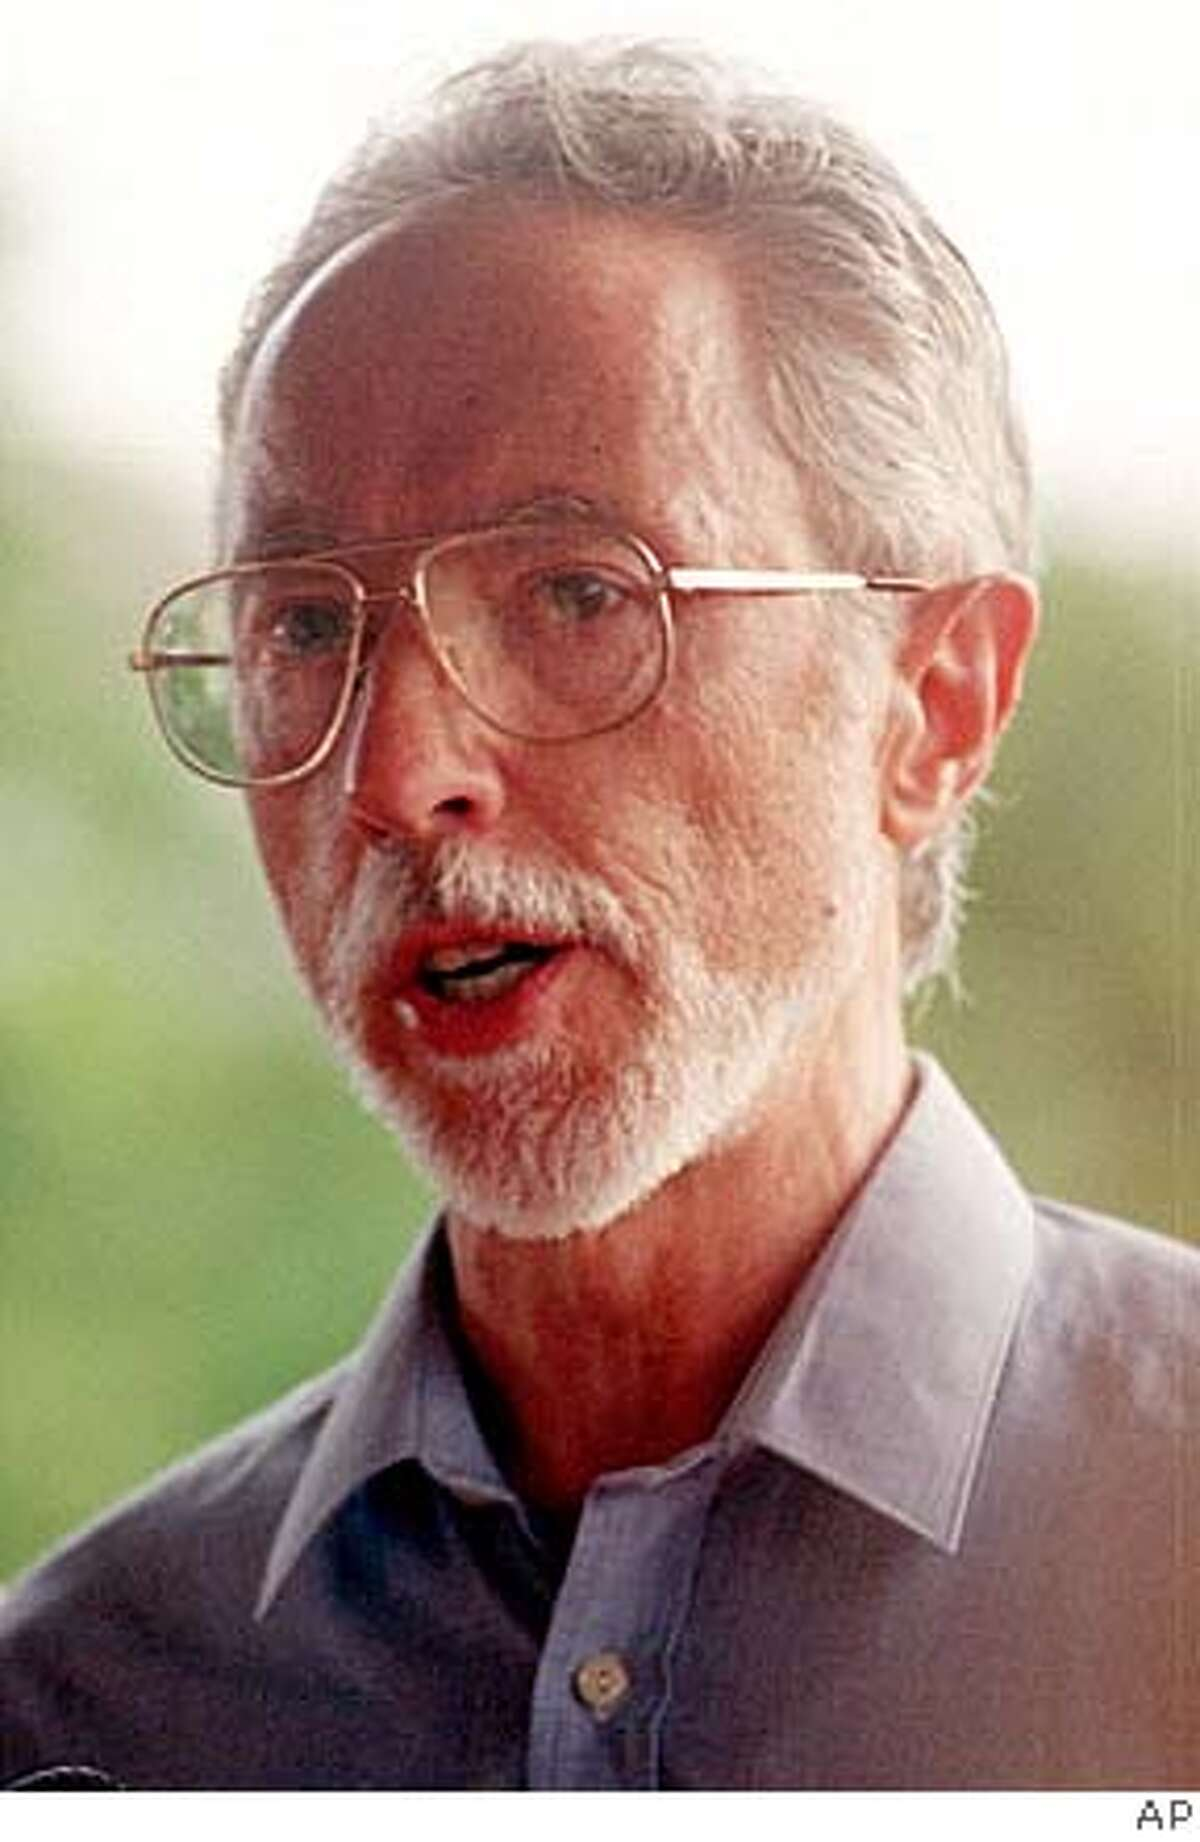 South African writer J.M. Coetzee is seen in this undated file photo. Coetzee has won the 2003 Nobel Prize for literature, it was announced Thursday Oct. 2, 2003. (AP Photo) Ran on: 01-06-2008 J.M. Coetzee won the Nobel Prize for Literature in 2003.